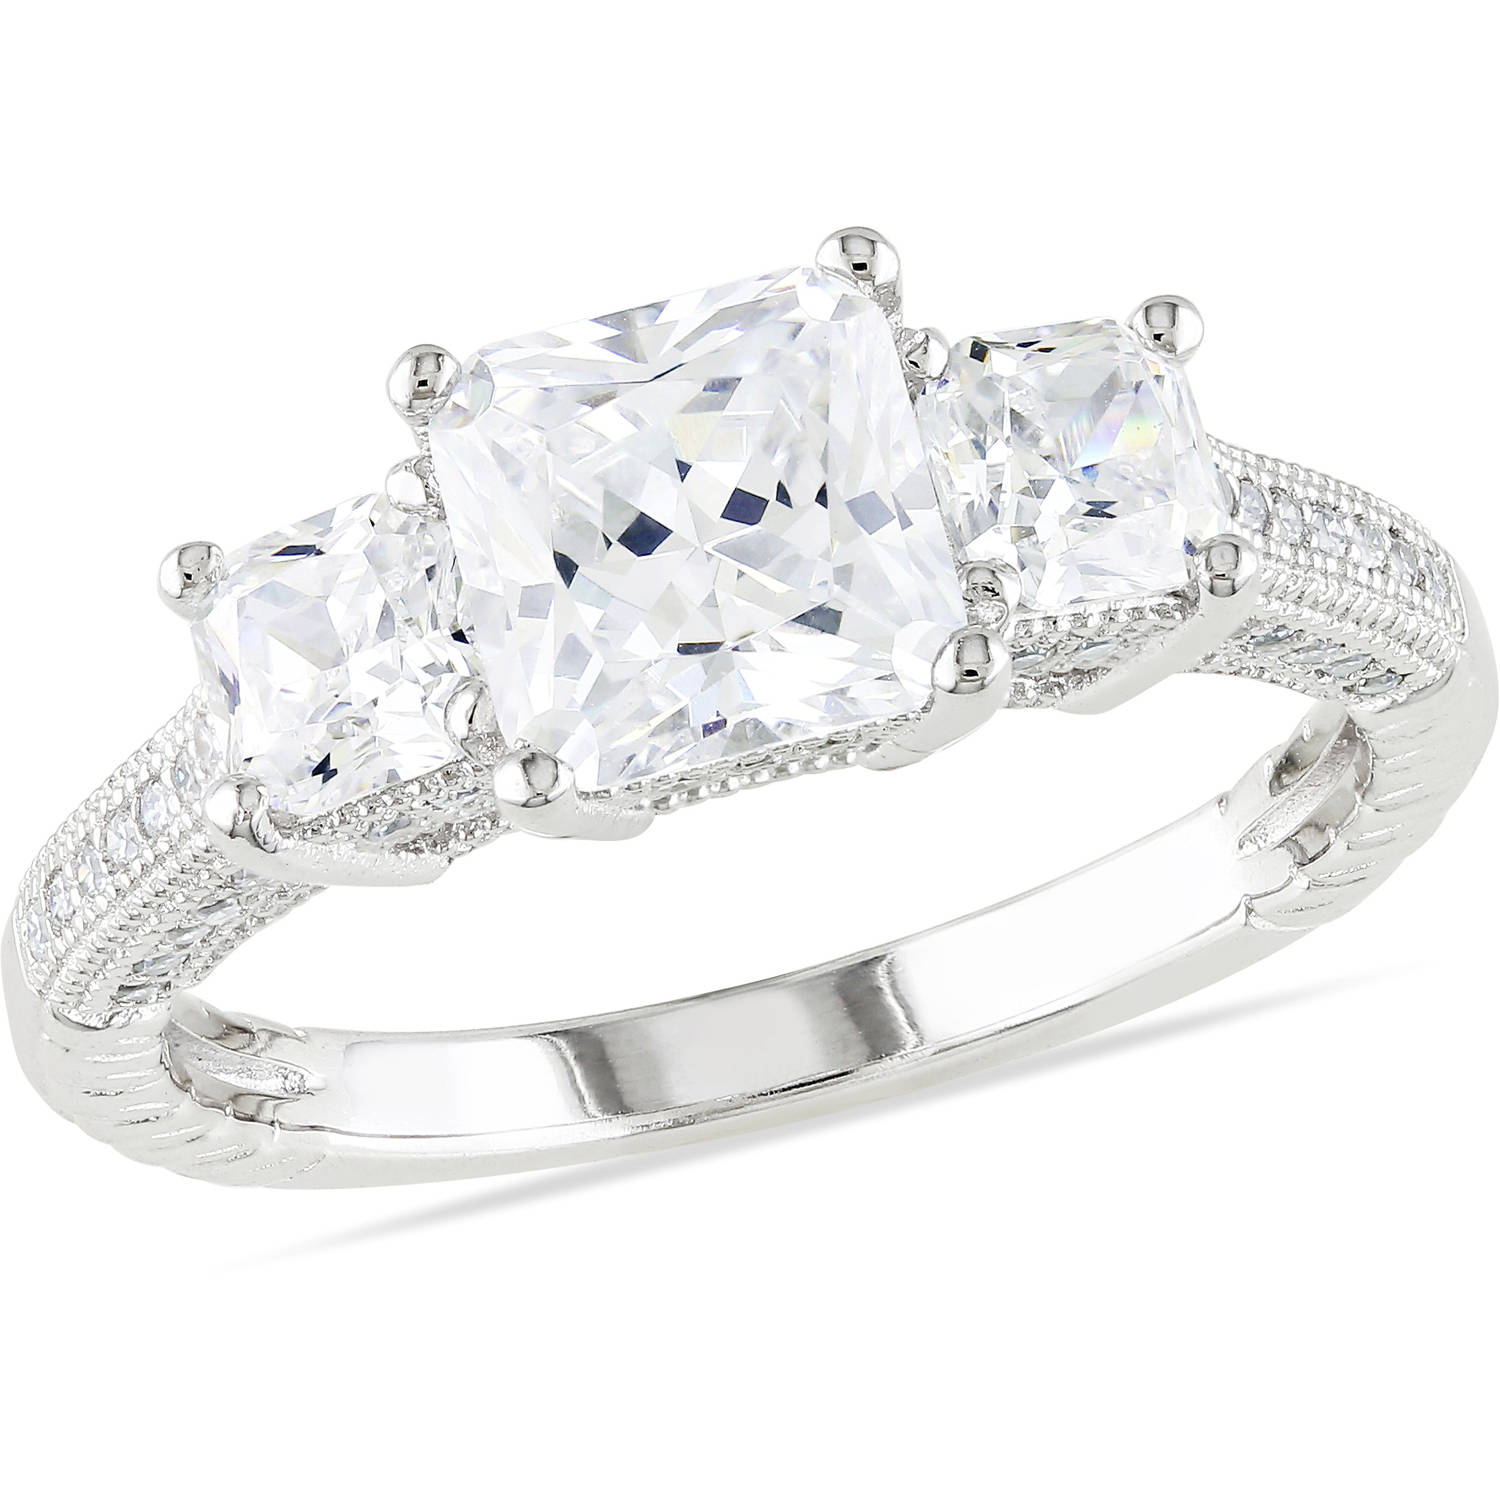 Miabella 5-1/6 Carat T.G.W. Square and Round-Cut Cubic Zirconia Sterling Silver Three Stone Engagement Ring